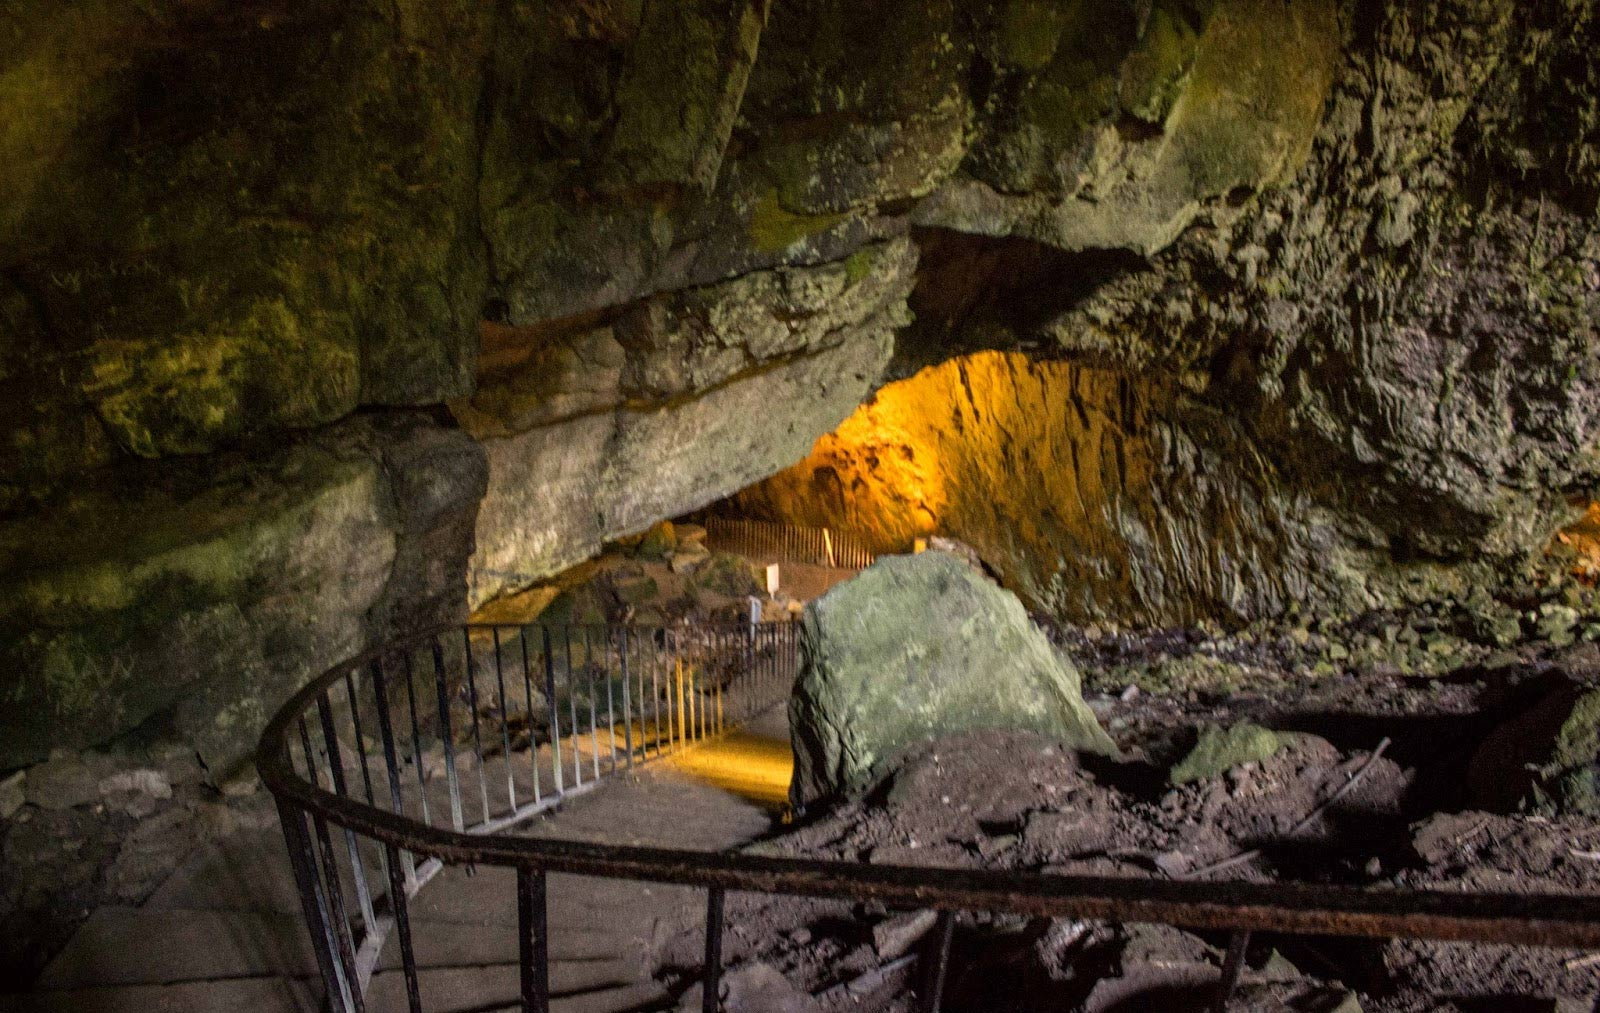 The Dunmore Cave of Ireland